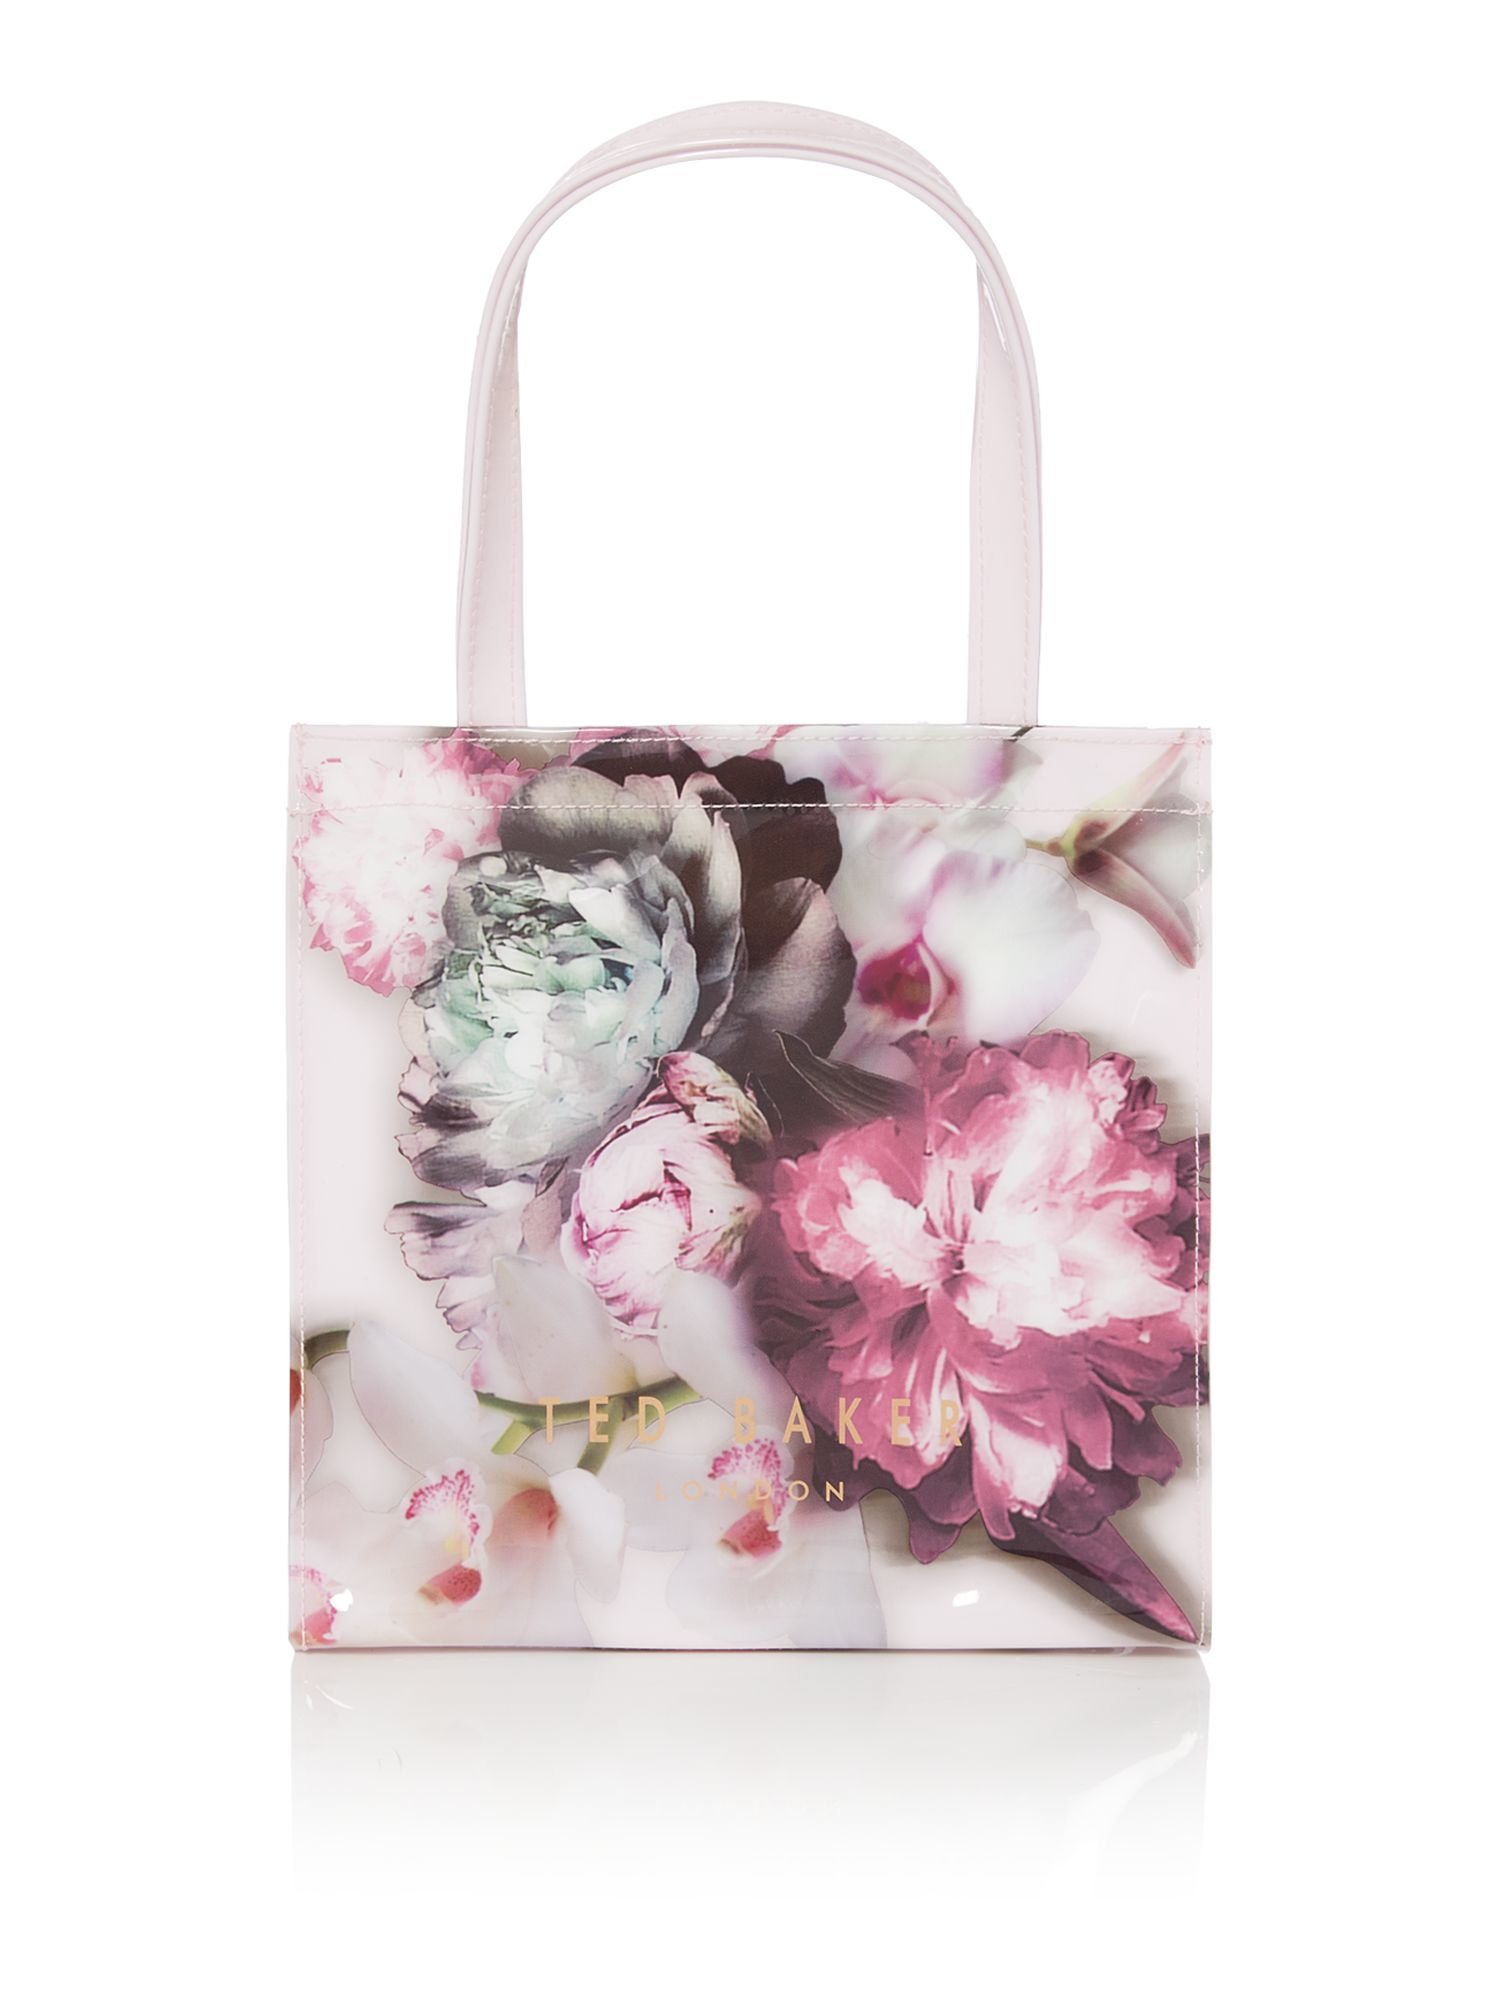 Lyst - Ted Baker Shelcon Pink Floral Small Bowcon Tote Bag In Pink